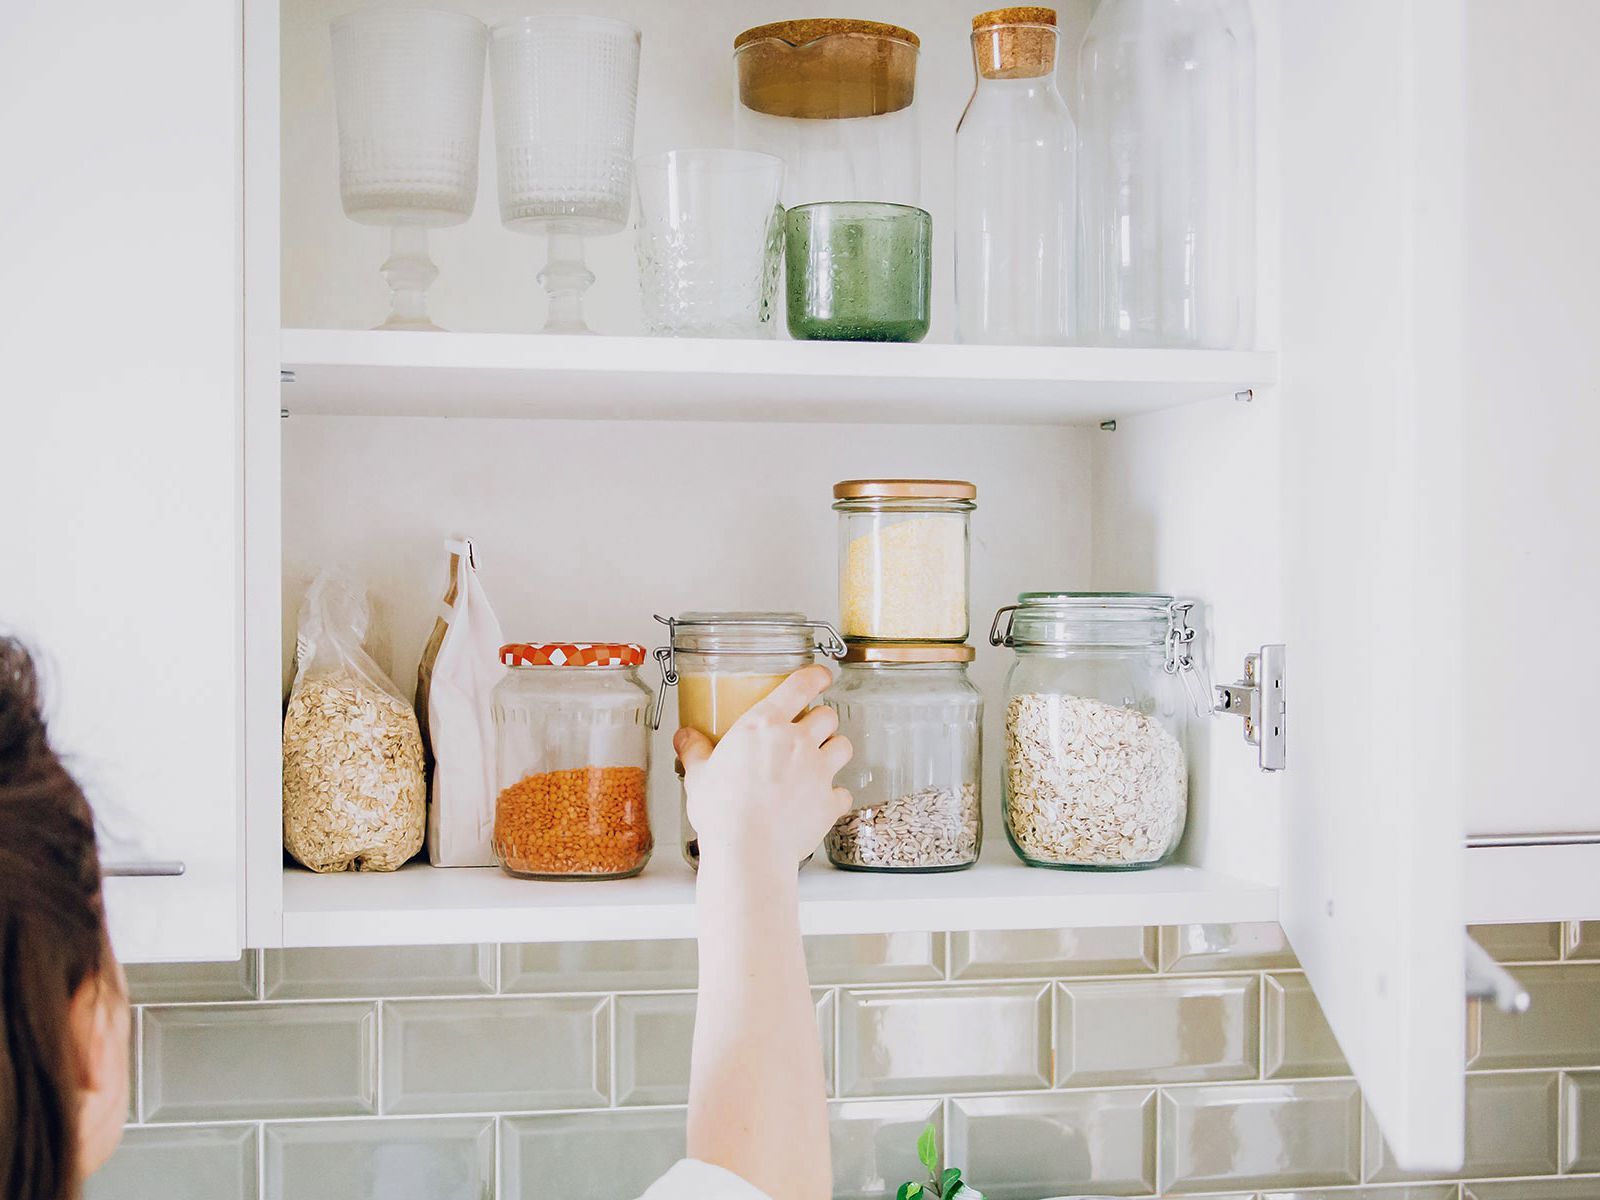 What To Clean Kitchen Cabinets With How to Deep Clean Kitchen Cabinets